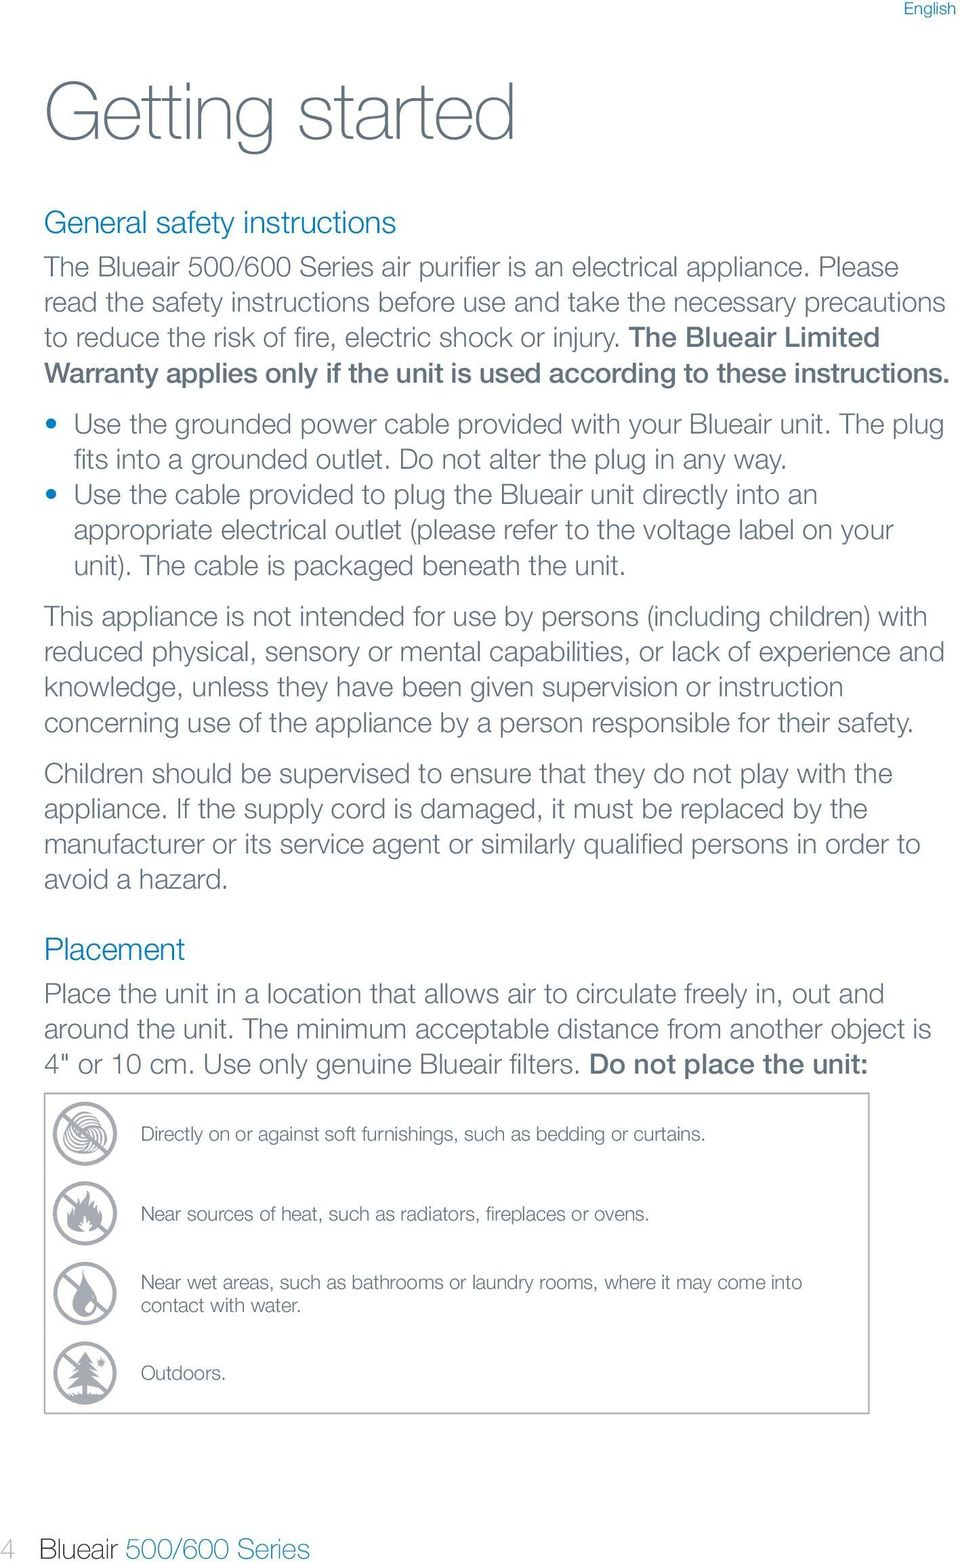 The Blueair Limited Warranty applies only if the unit is used according to these instructions. Use the grounded power cable provided with your Blueair unit. The plug fits into a grounded outlet.